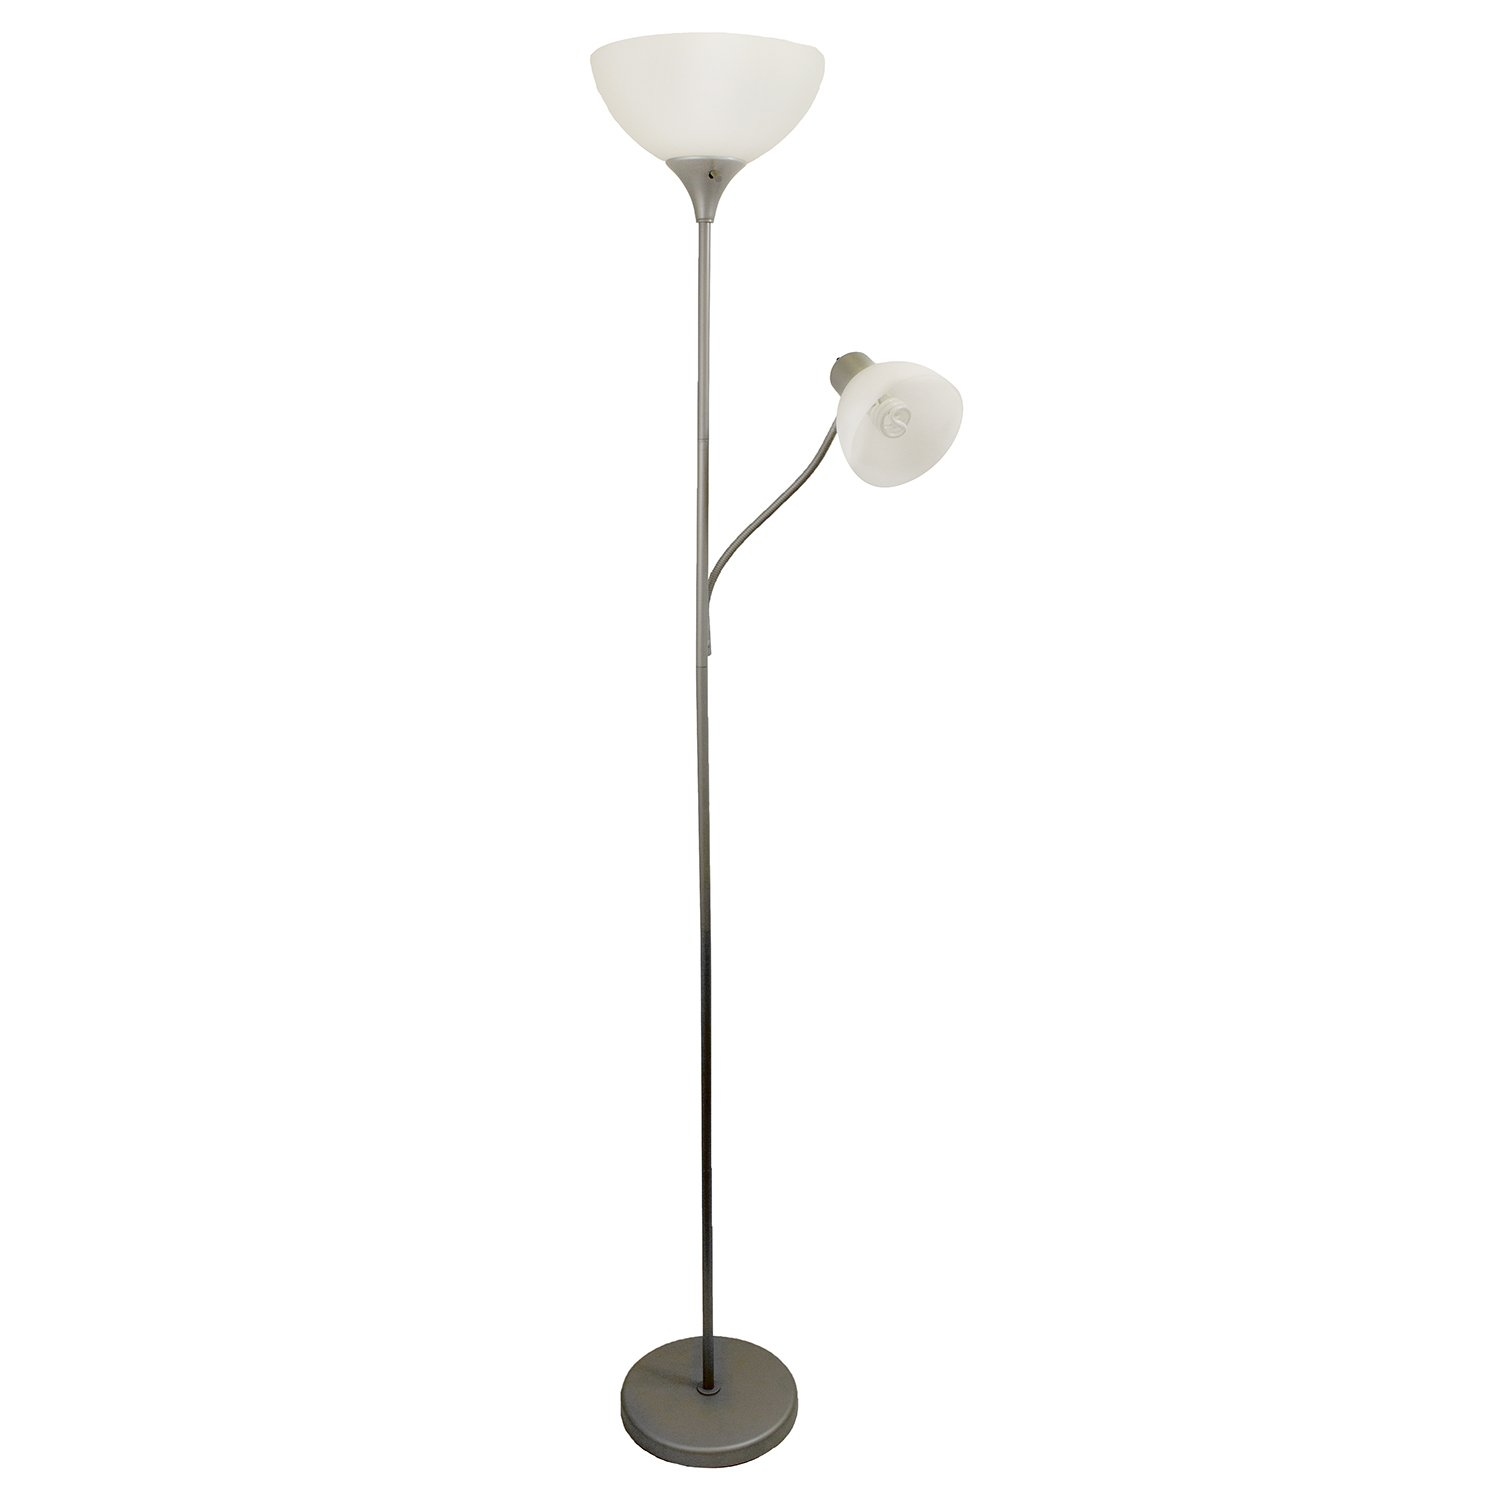 Simple Designs LF2000-SLV Floor Lamp with Reading Light, Silver by Simple Designs Home